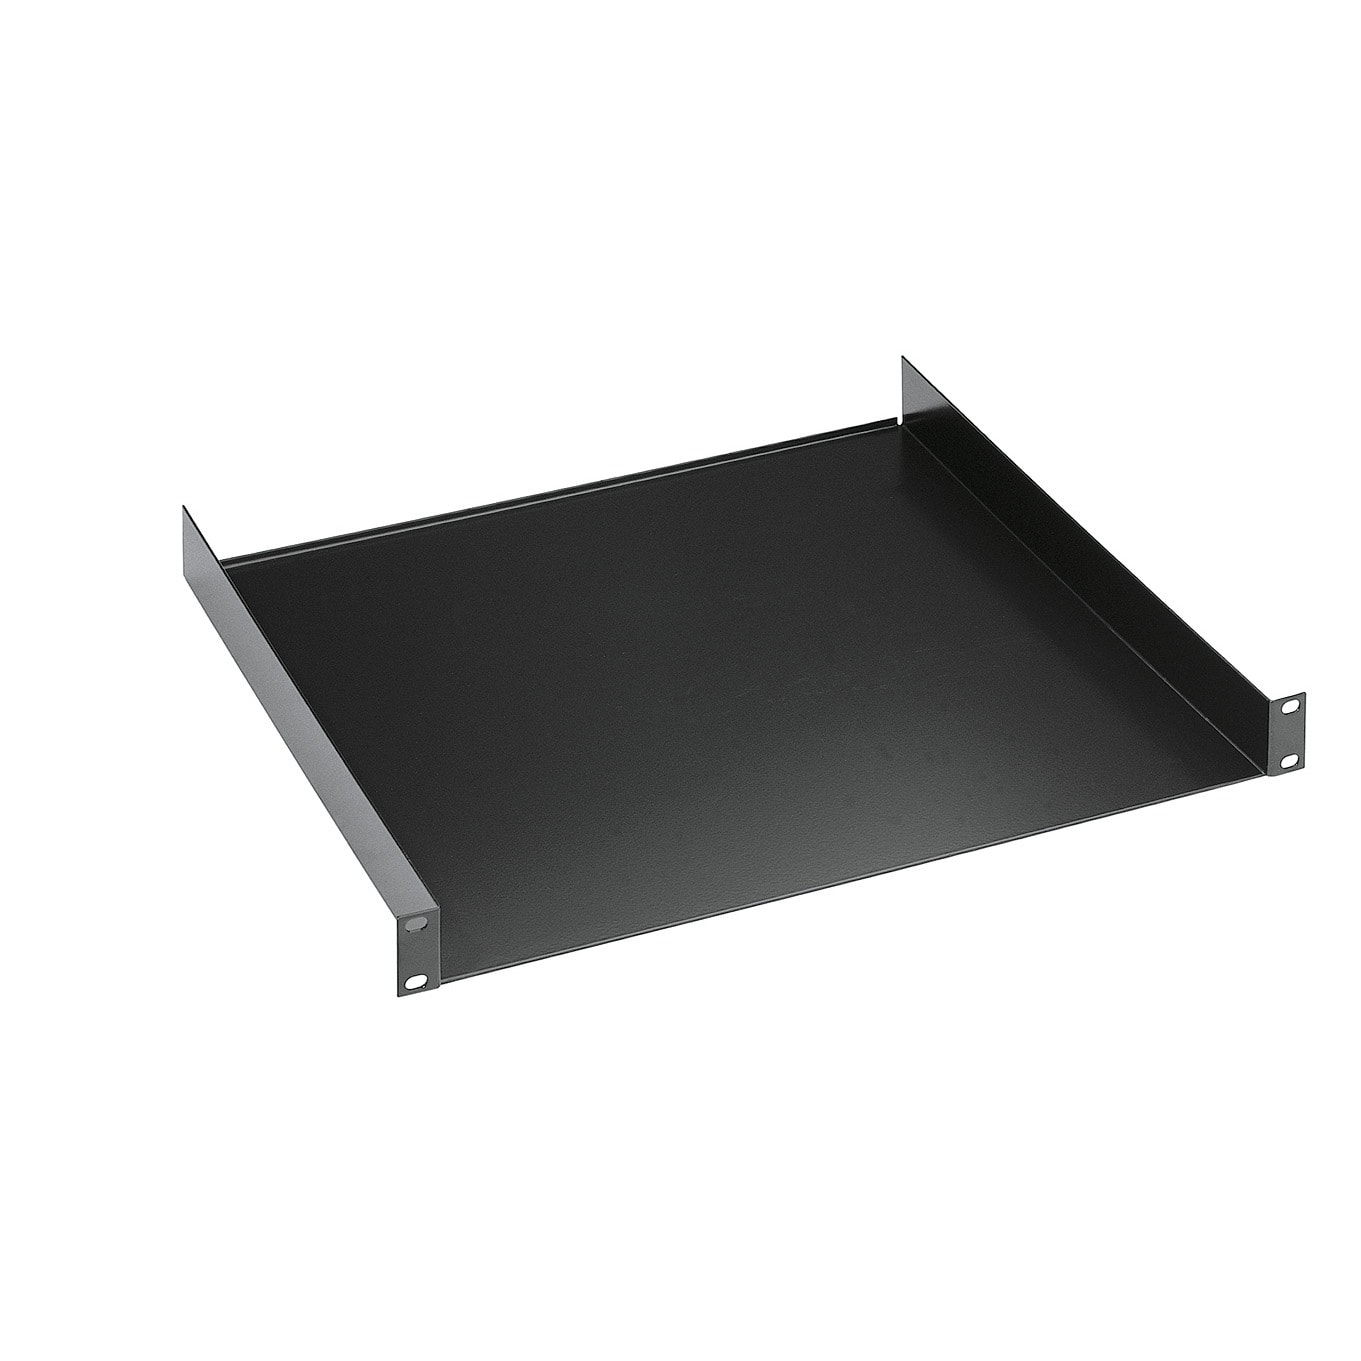 "KM28481 - 19"" rack shelf"